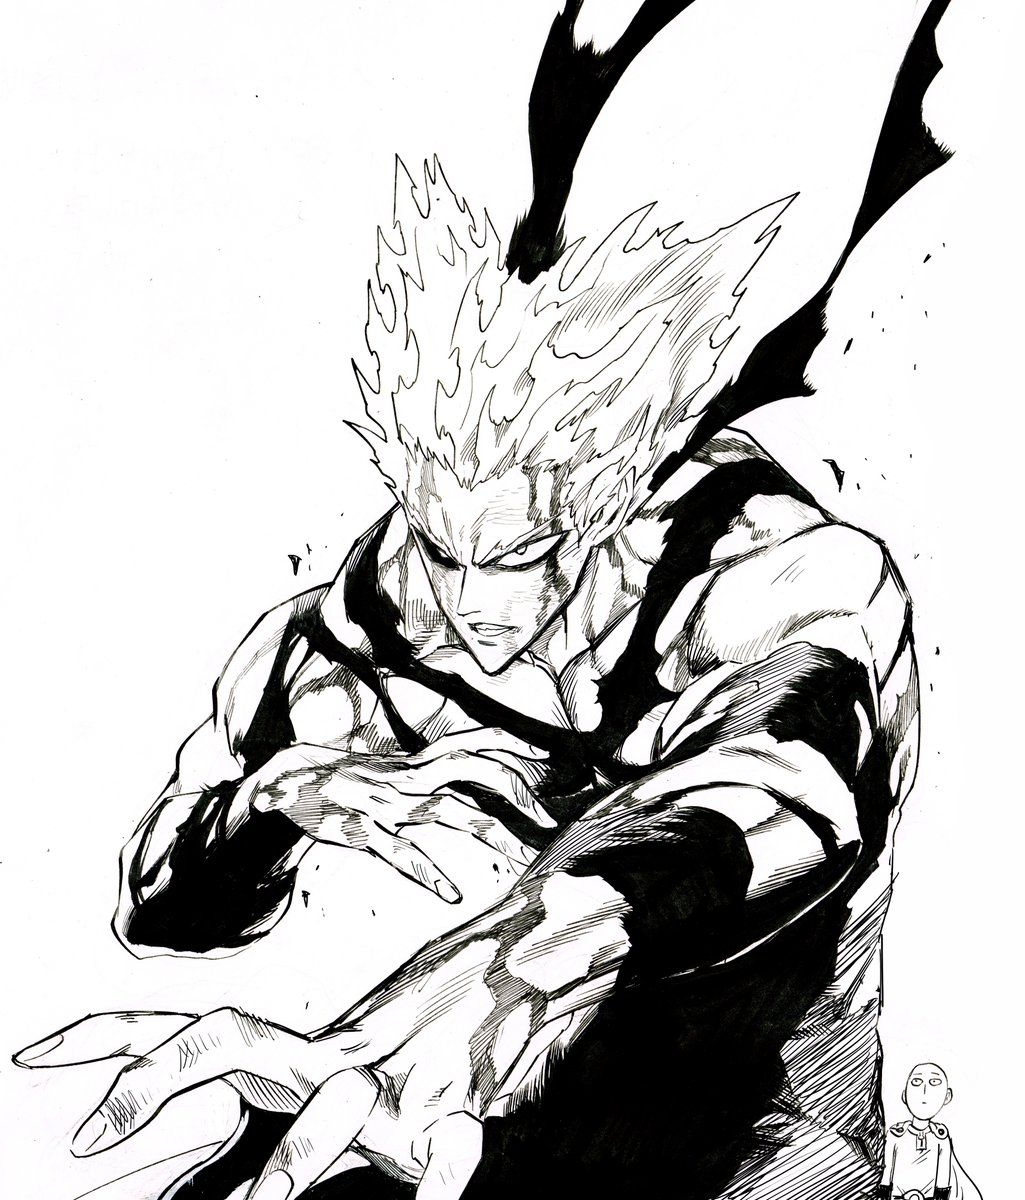 Pin By Fatah On Garou In 2020 One Punch Man Manga One Punch Man Anime Saitama One Punch Man